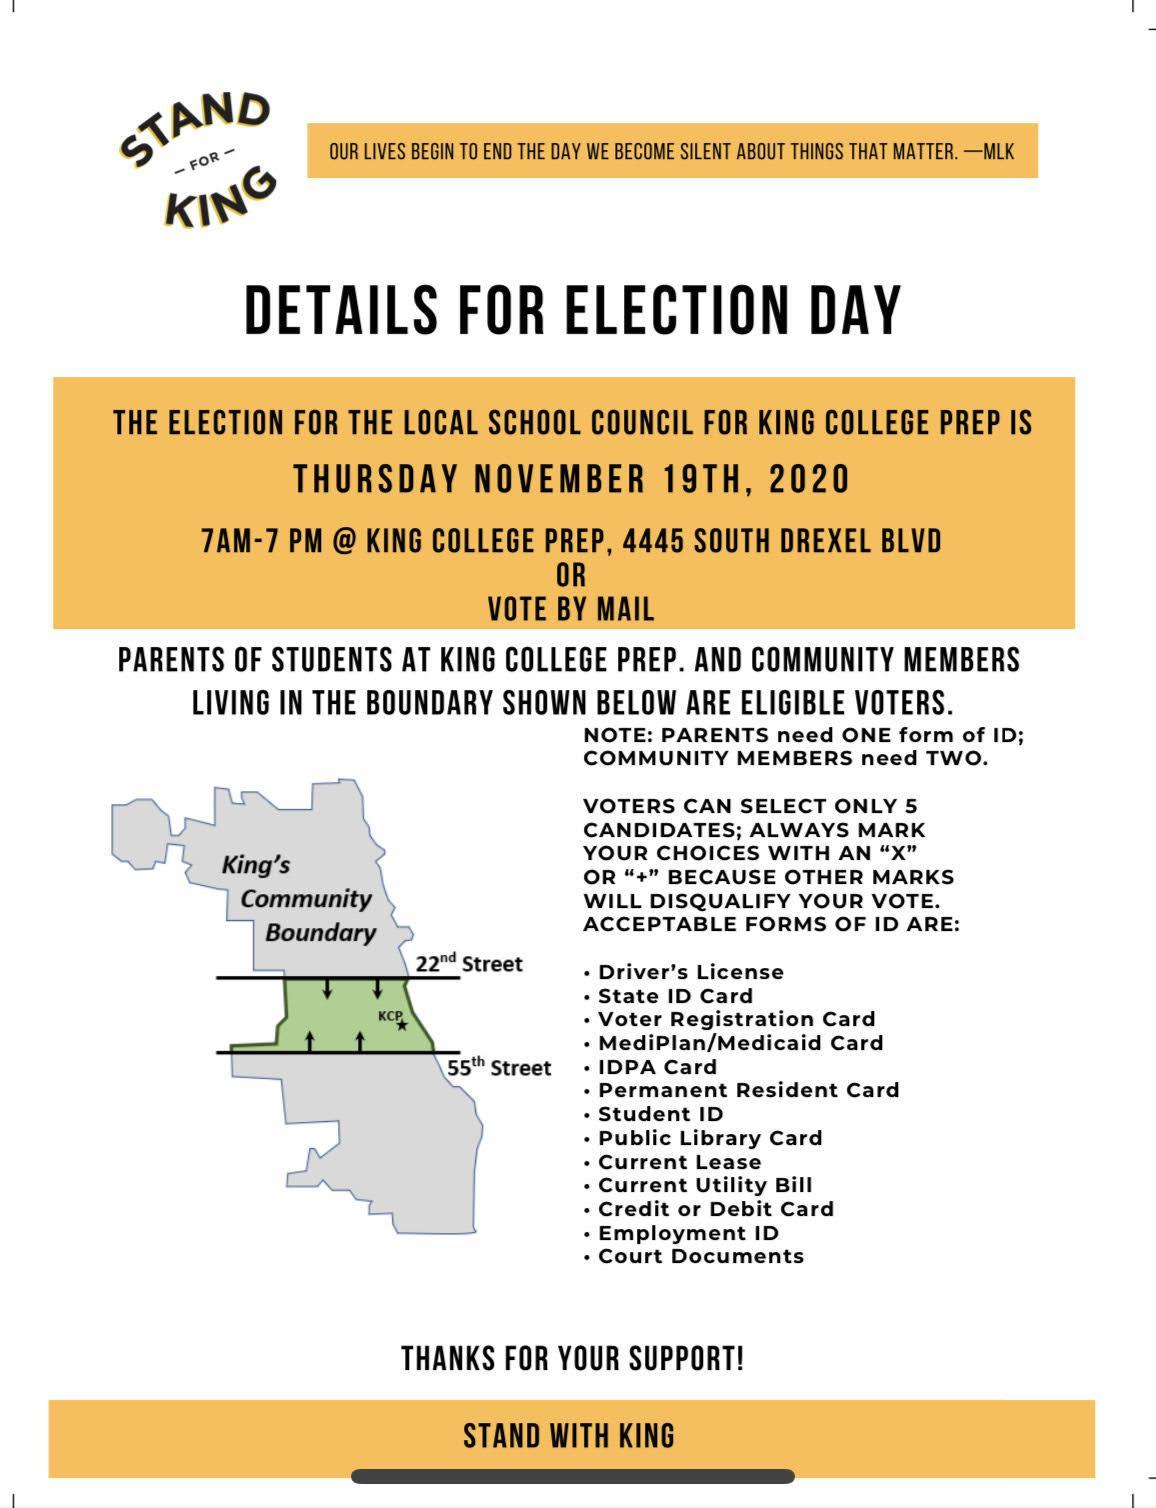 Details for election day